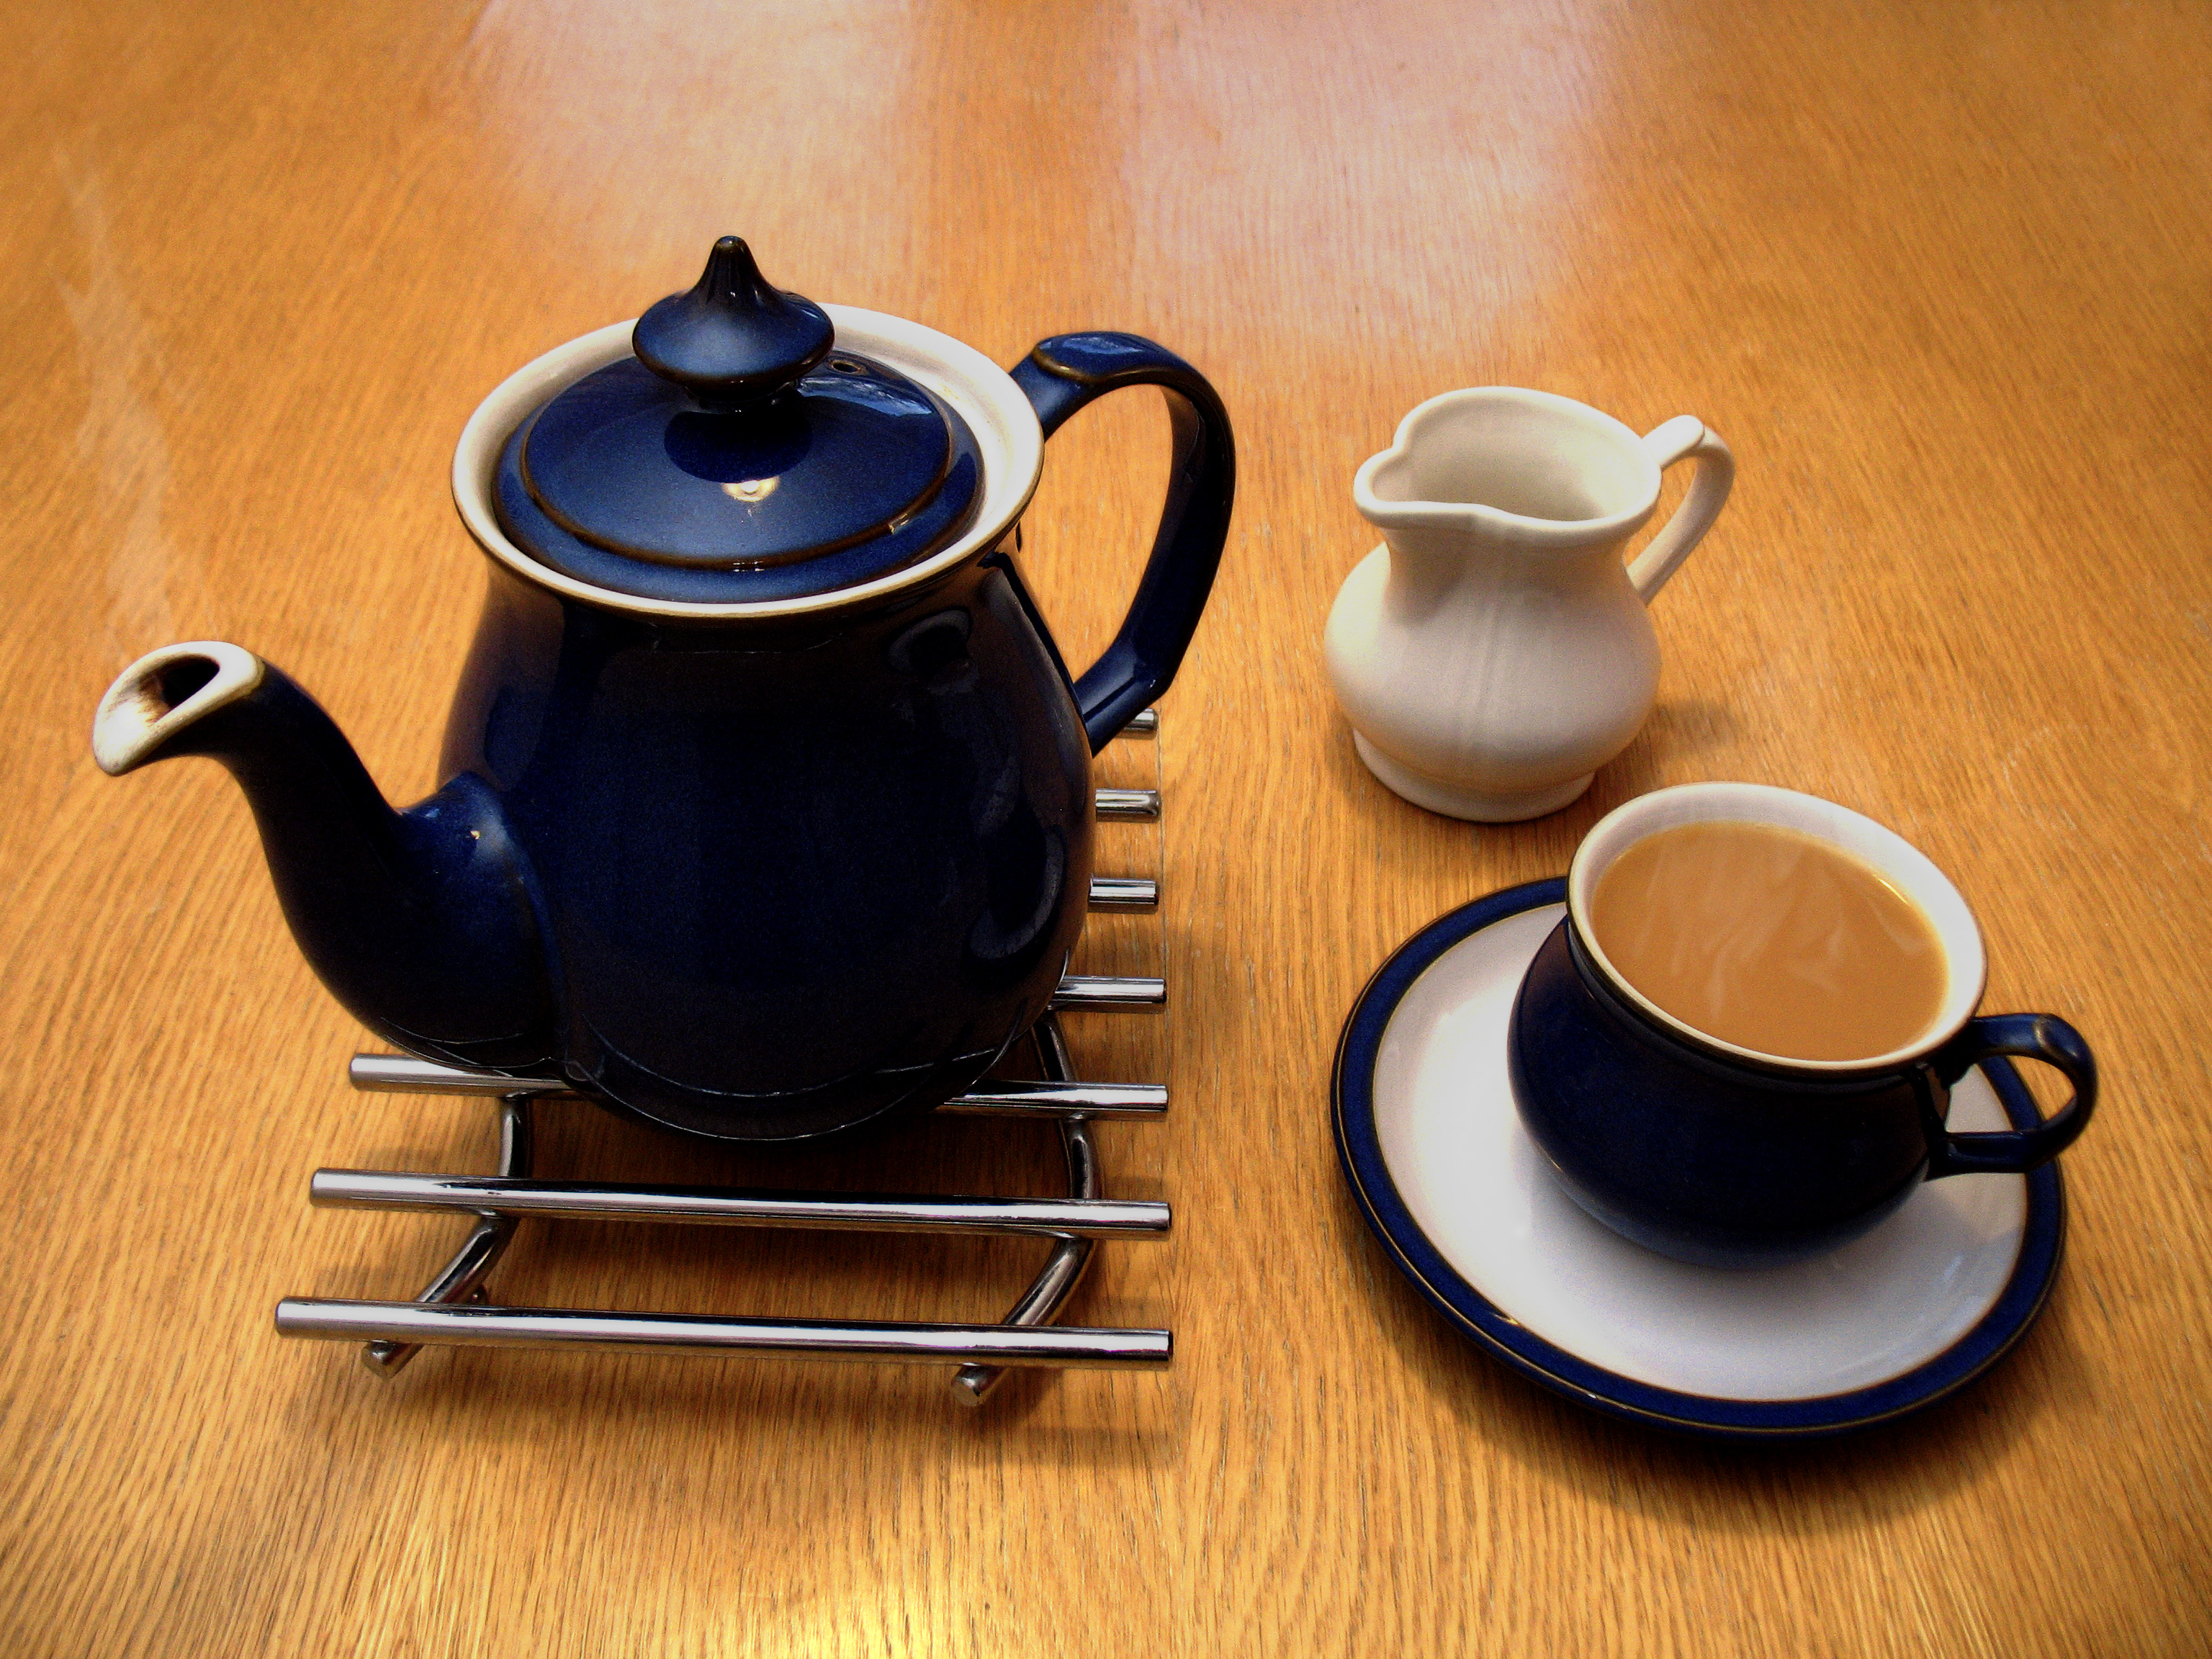 Tea pot freshly made tea with milk - Wikimedia Commons